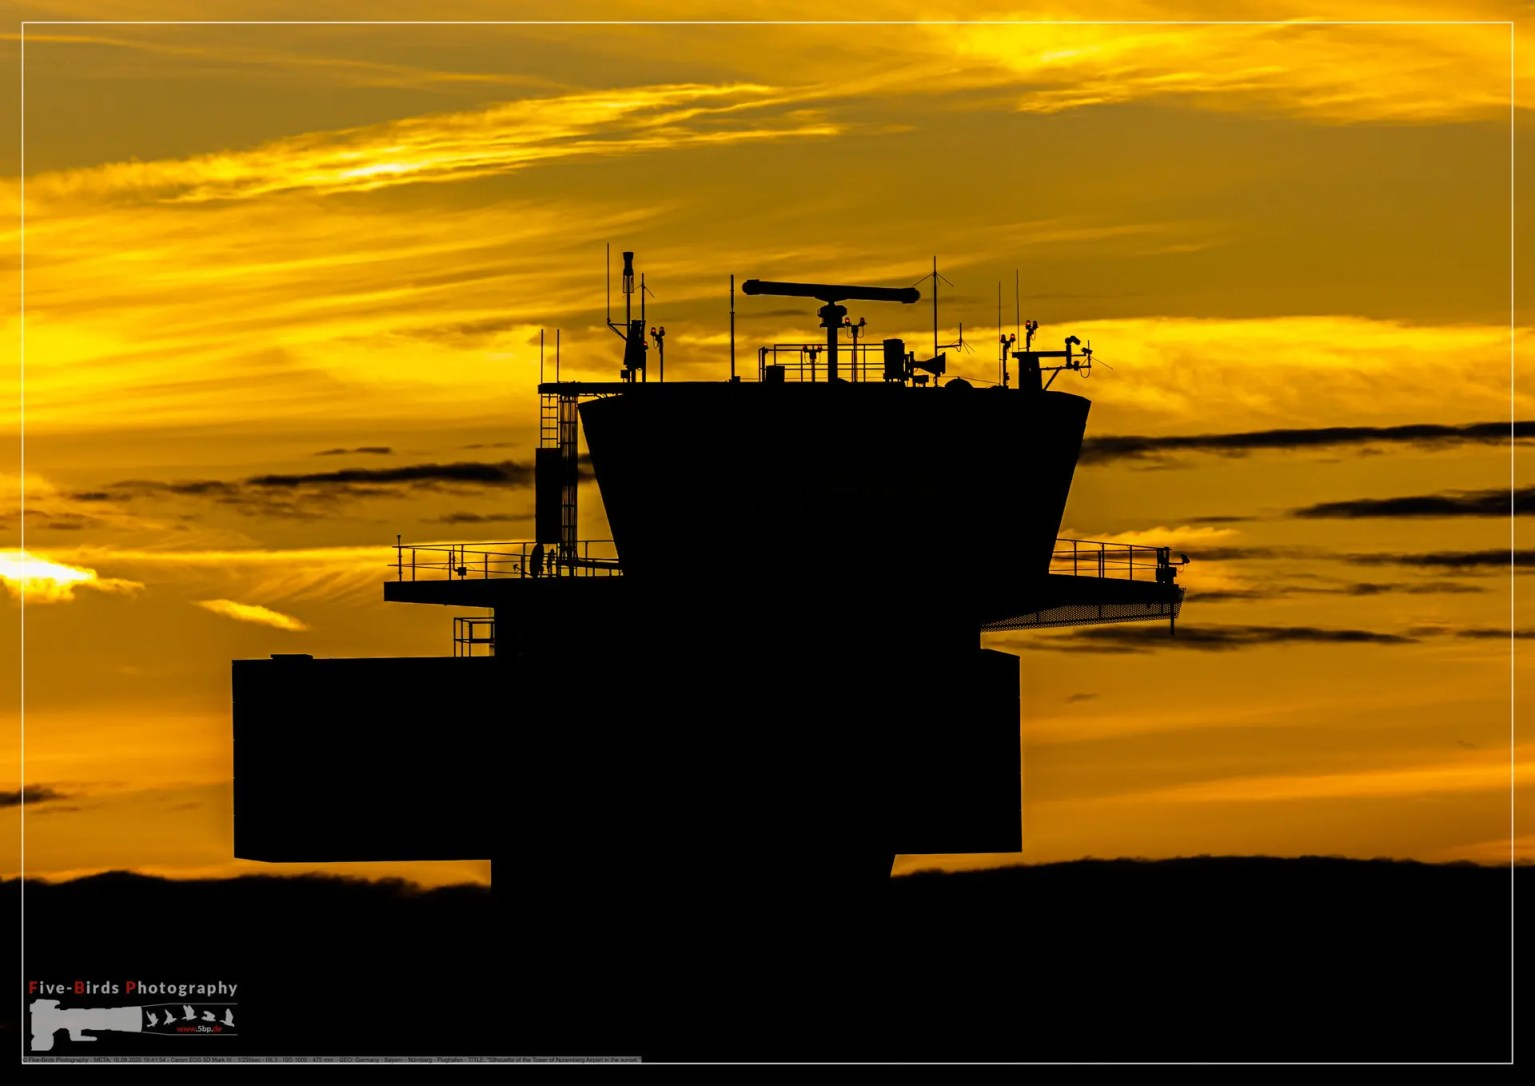 Silhouette of the Tower of Nuremberg Airport in the sunset